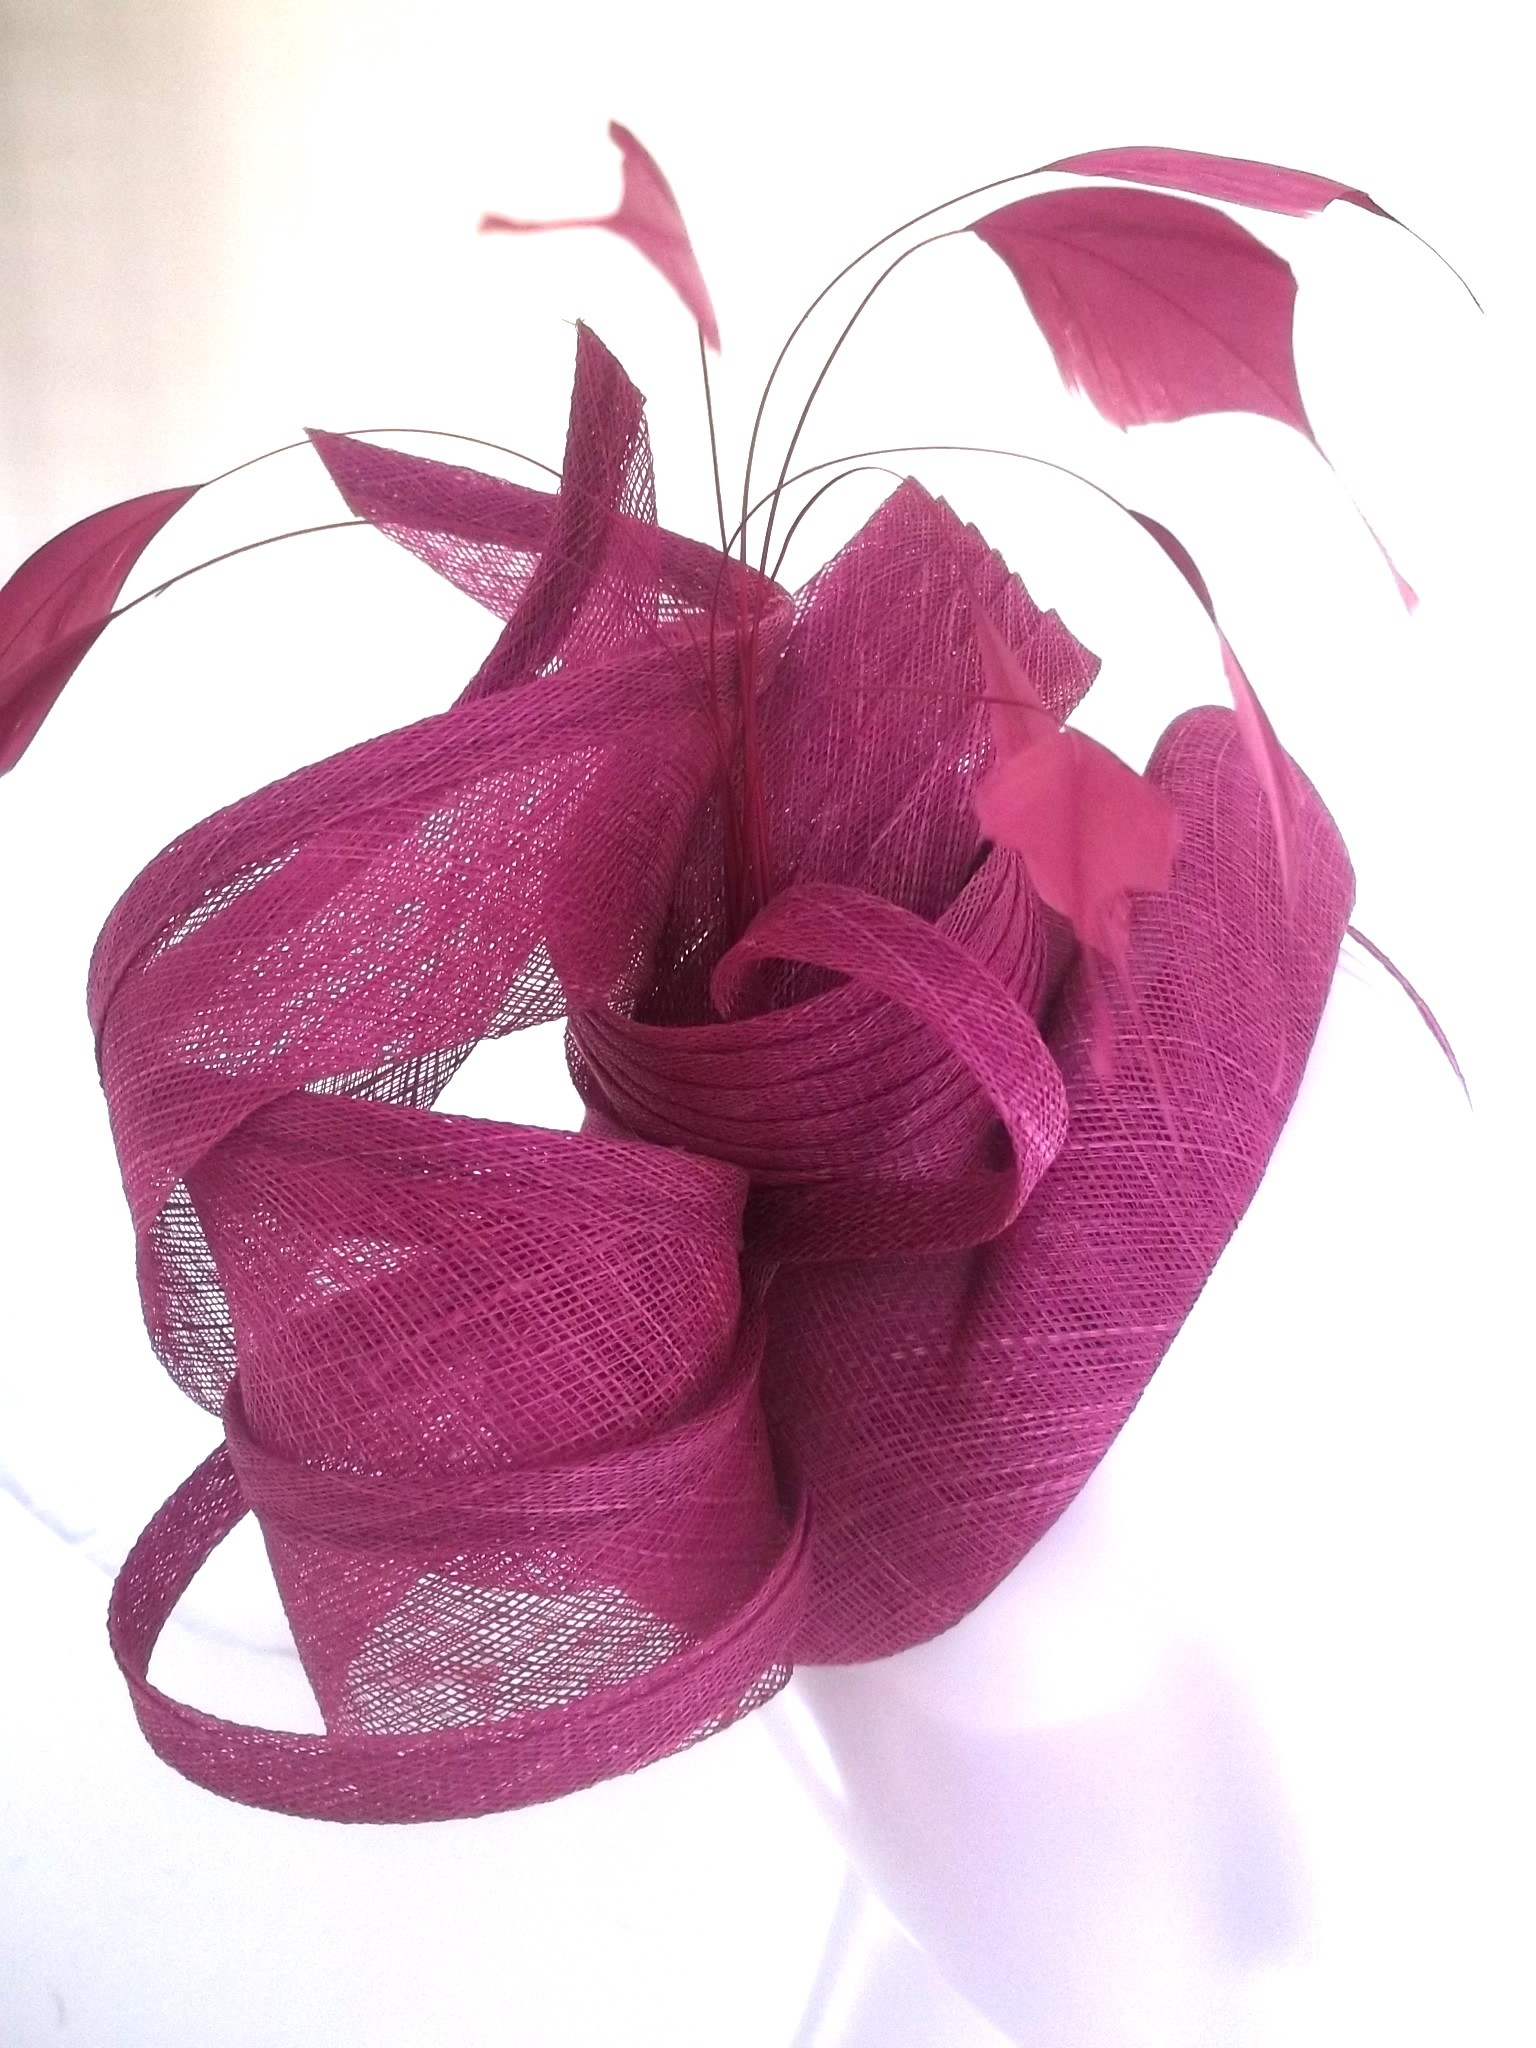 Snoxell Gwyther - Fascinator (Magenta) - Fascinators  b1a976d7fd3